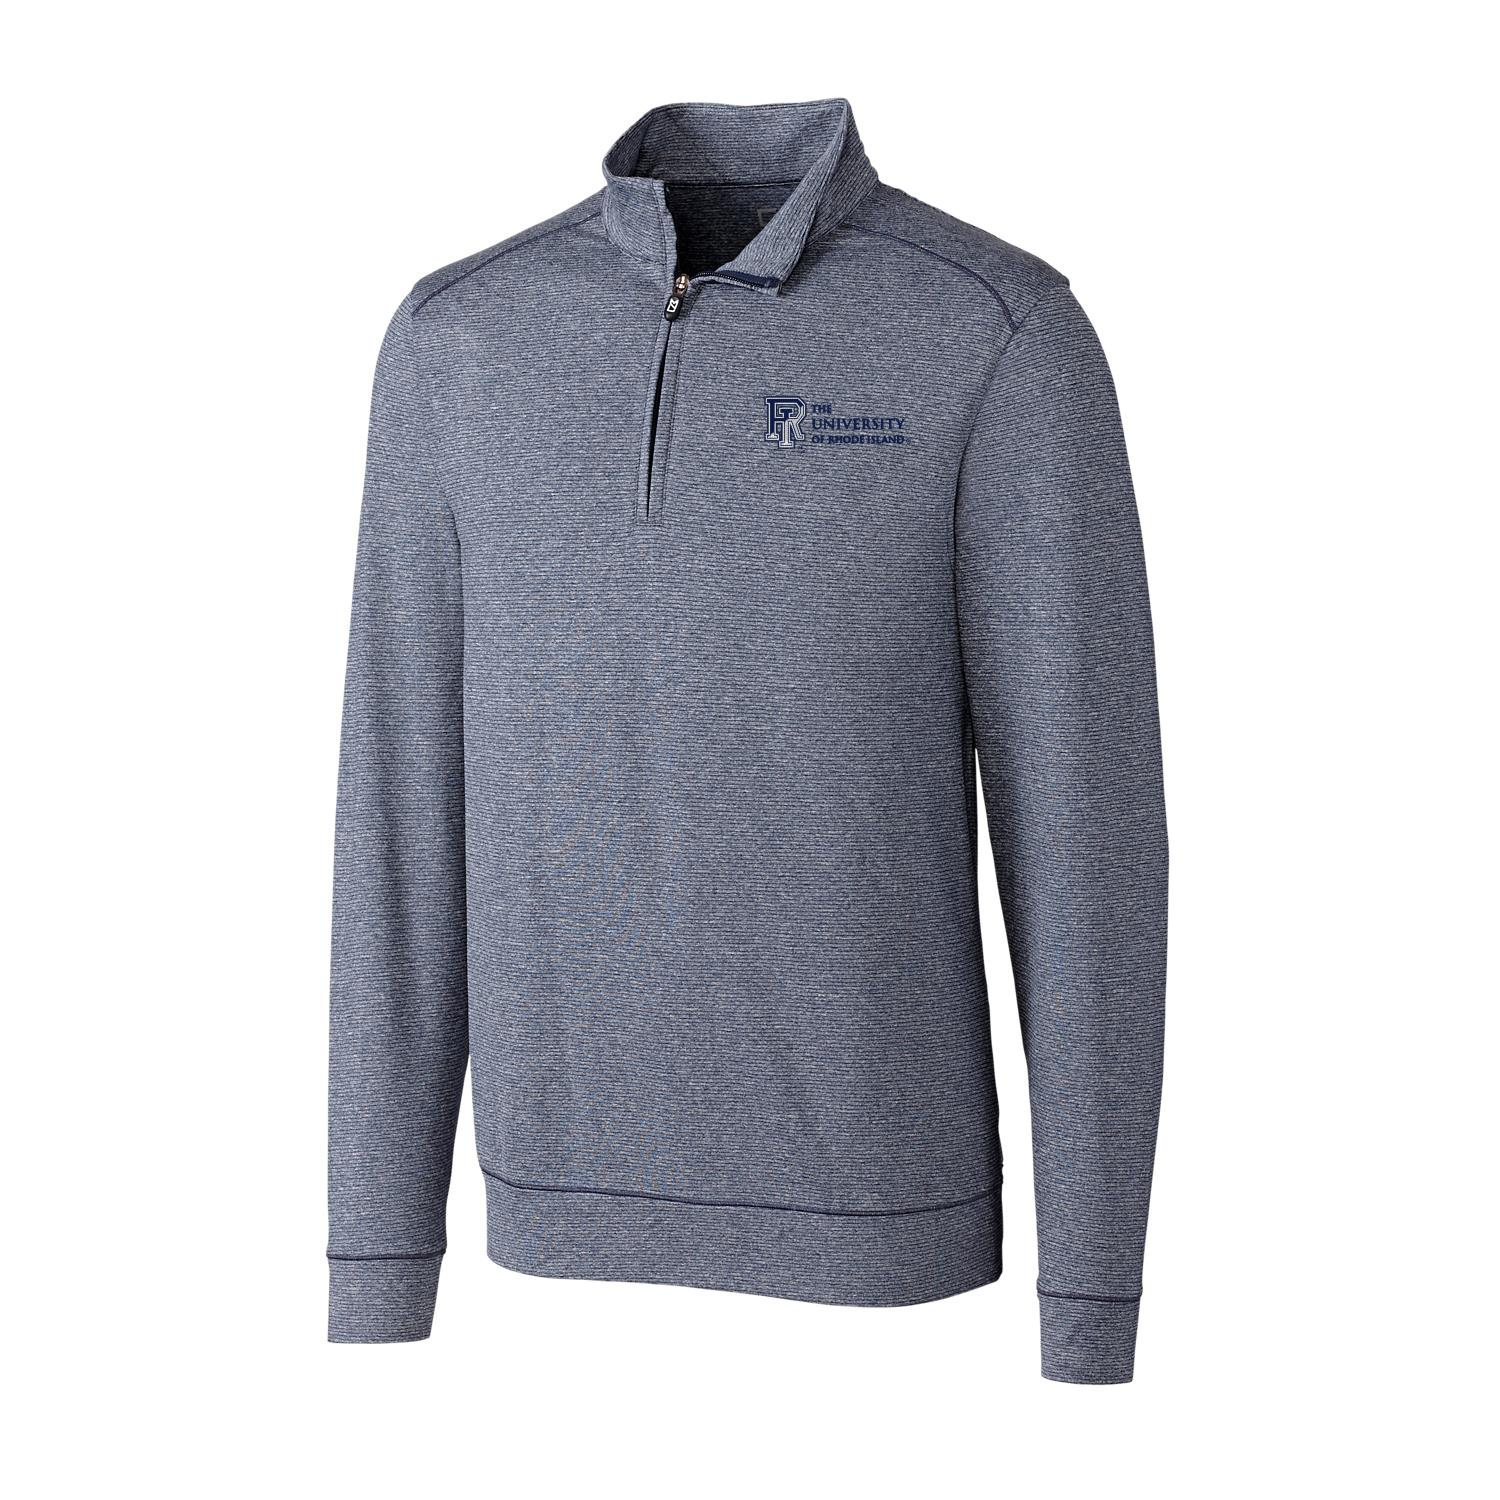 Cover Image For C&B DryTech Shoreline 1/2 Zip